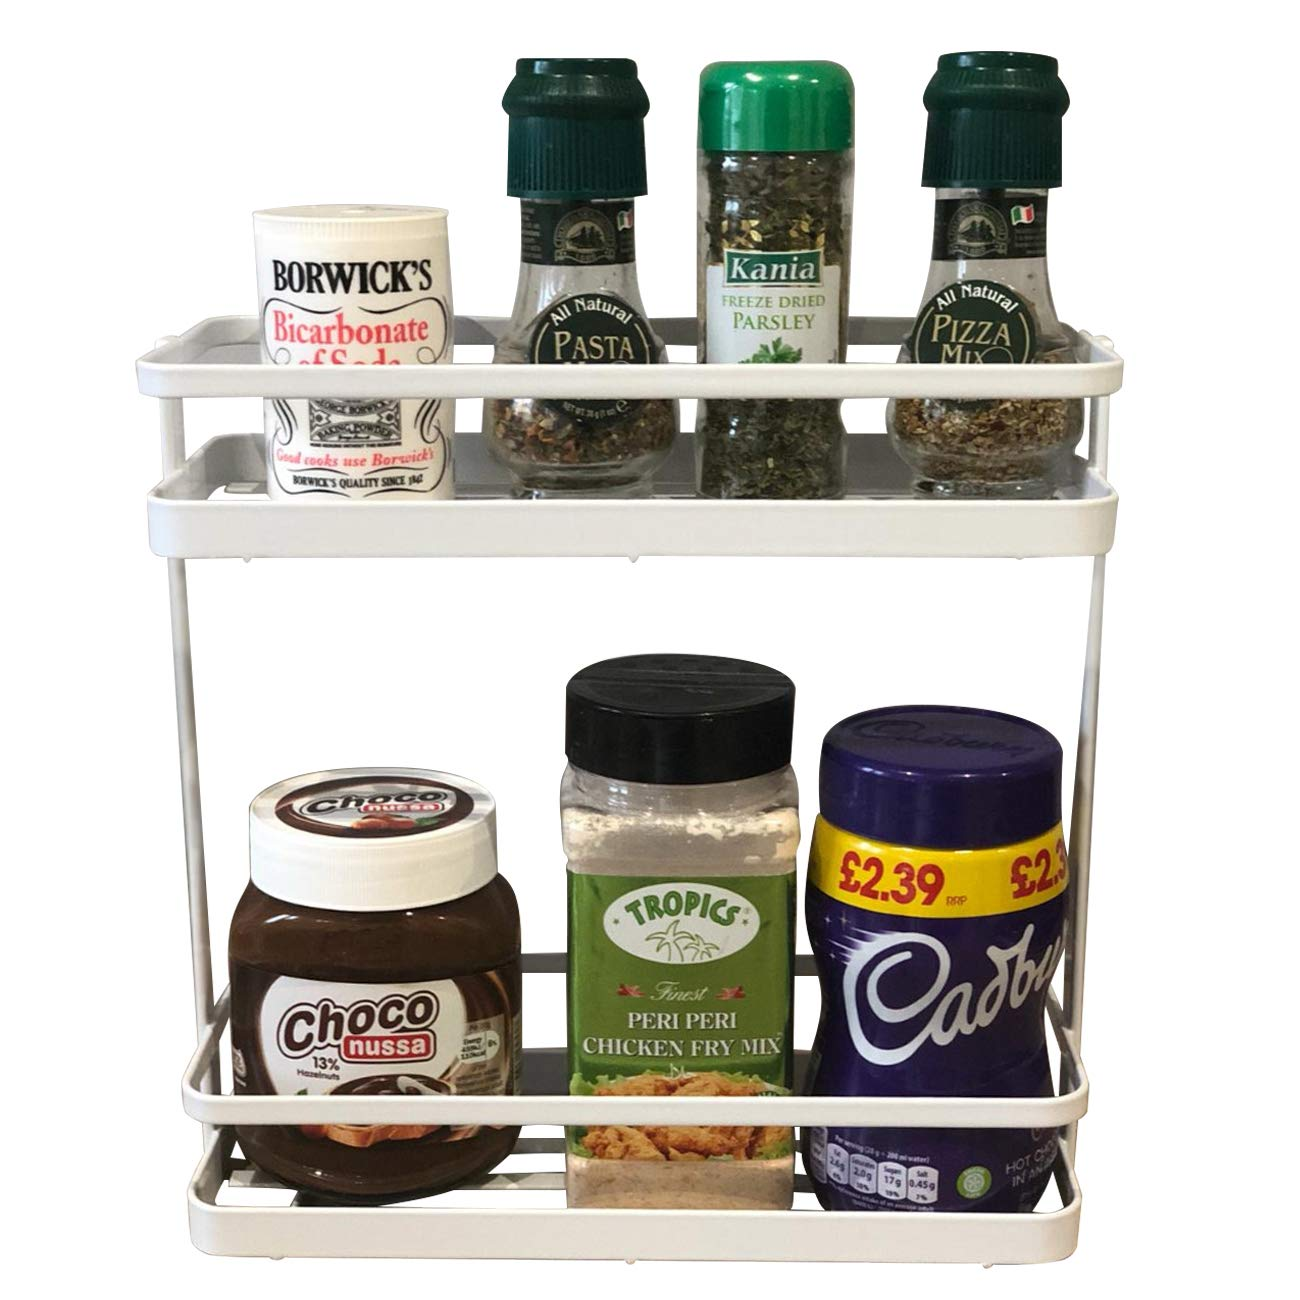 TiooDre 2 Tier Herb and Spice Rack :250 * 25 * 40mm| Spice Organizer Wall Mountable or Kitchen Cupboard Storage bxdxh Easy to Install | Measurements: